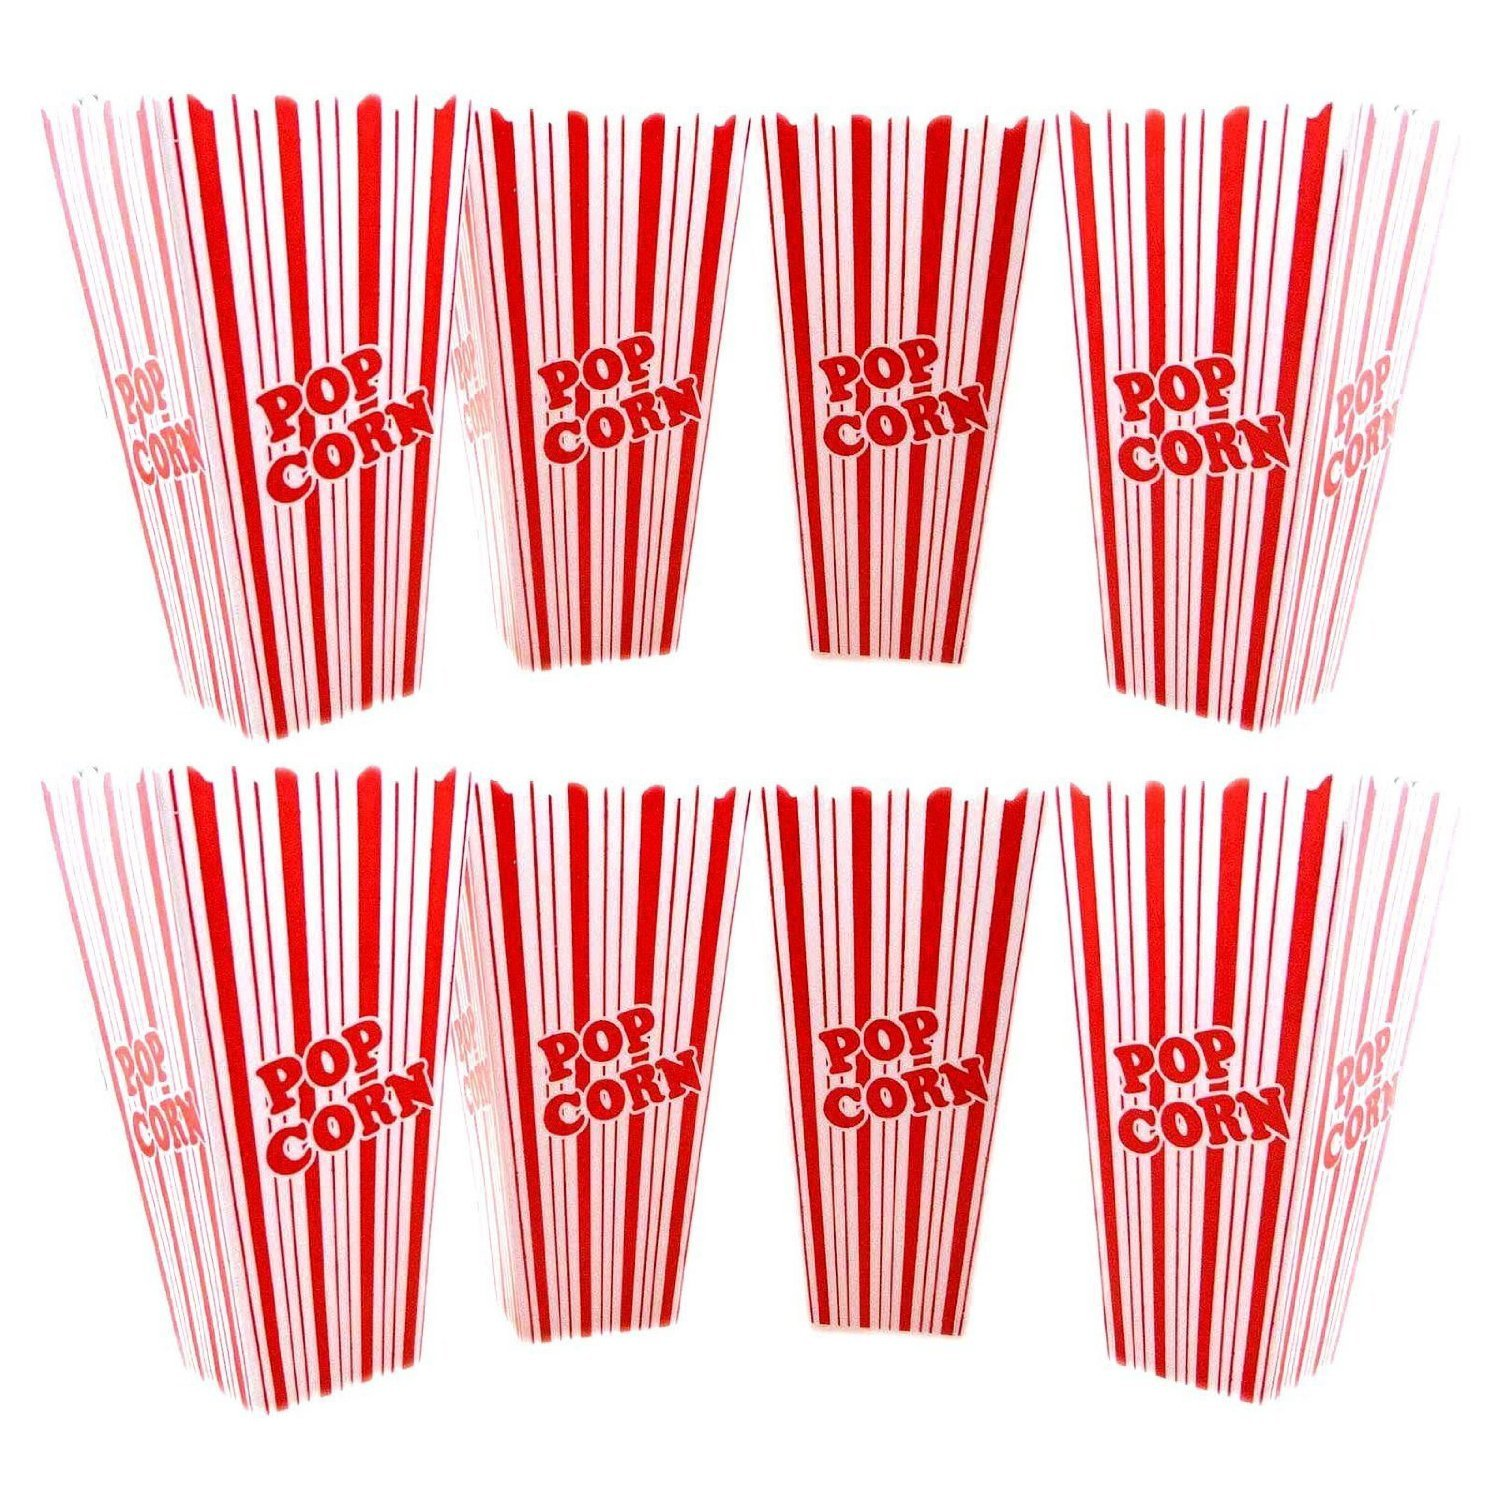 Classic Plastic Popcorn Tubs Set Reusable Containers Buckets Retro Movie Theater Style Movie Night Serving Bowls (Set of 8), movie popcorn Size stripped.., By Deco4Fun